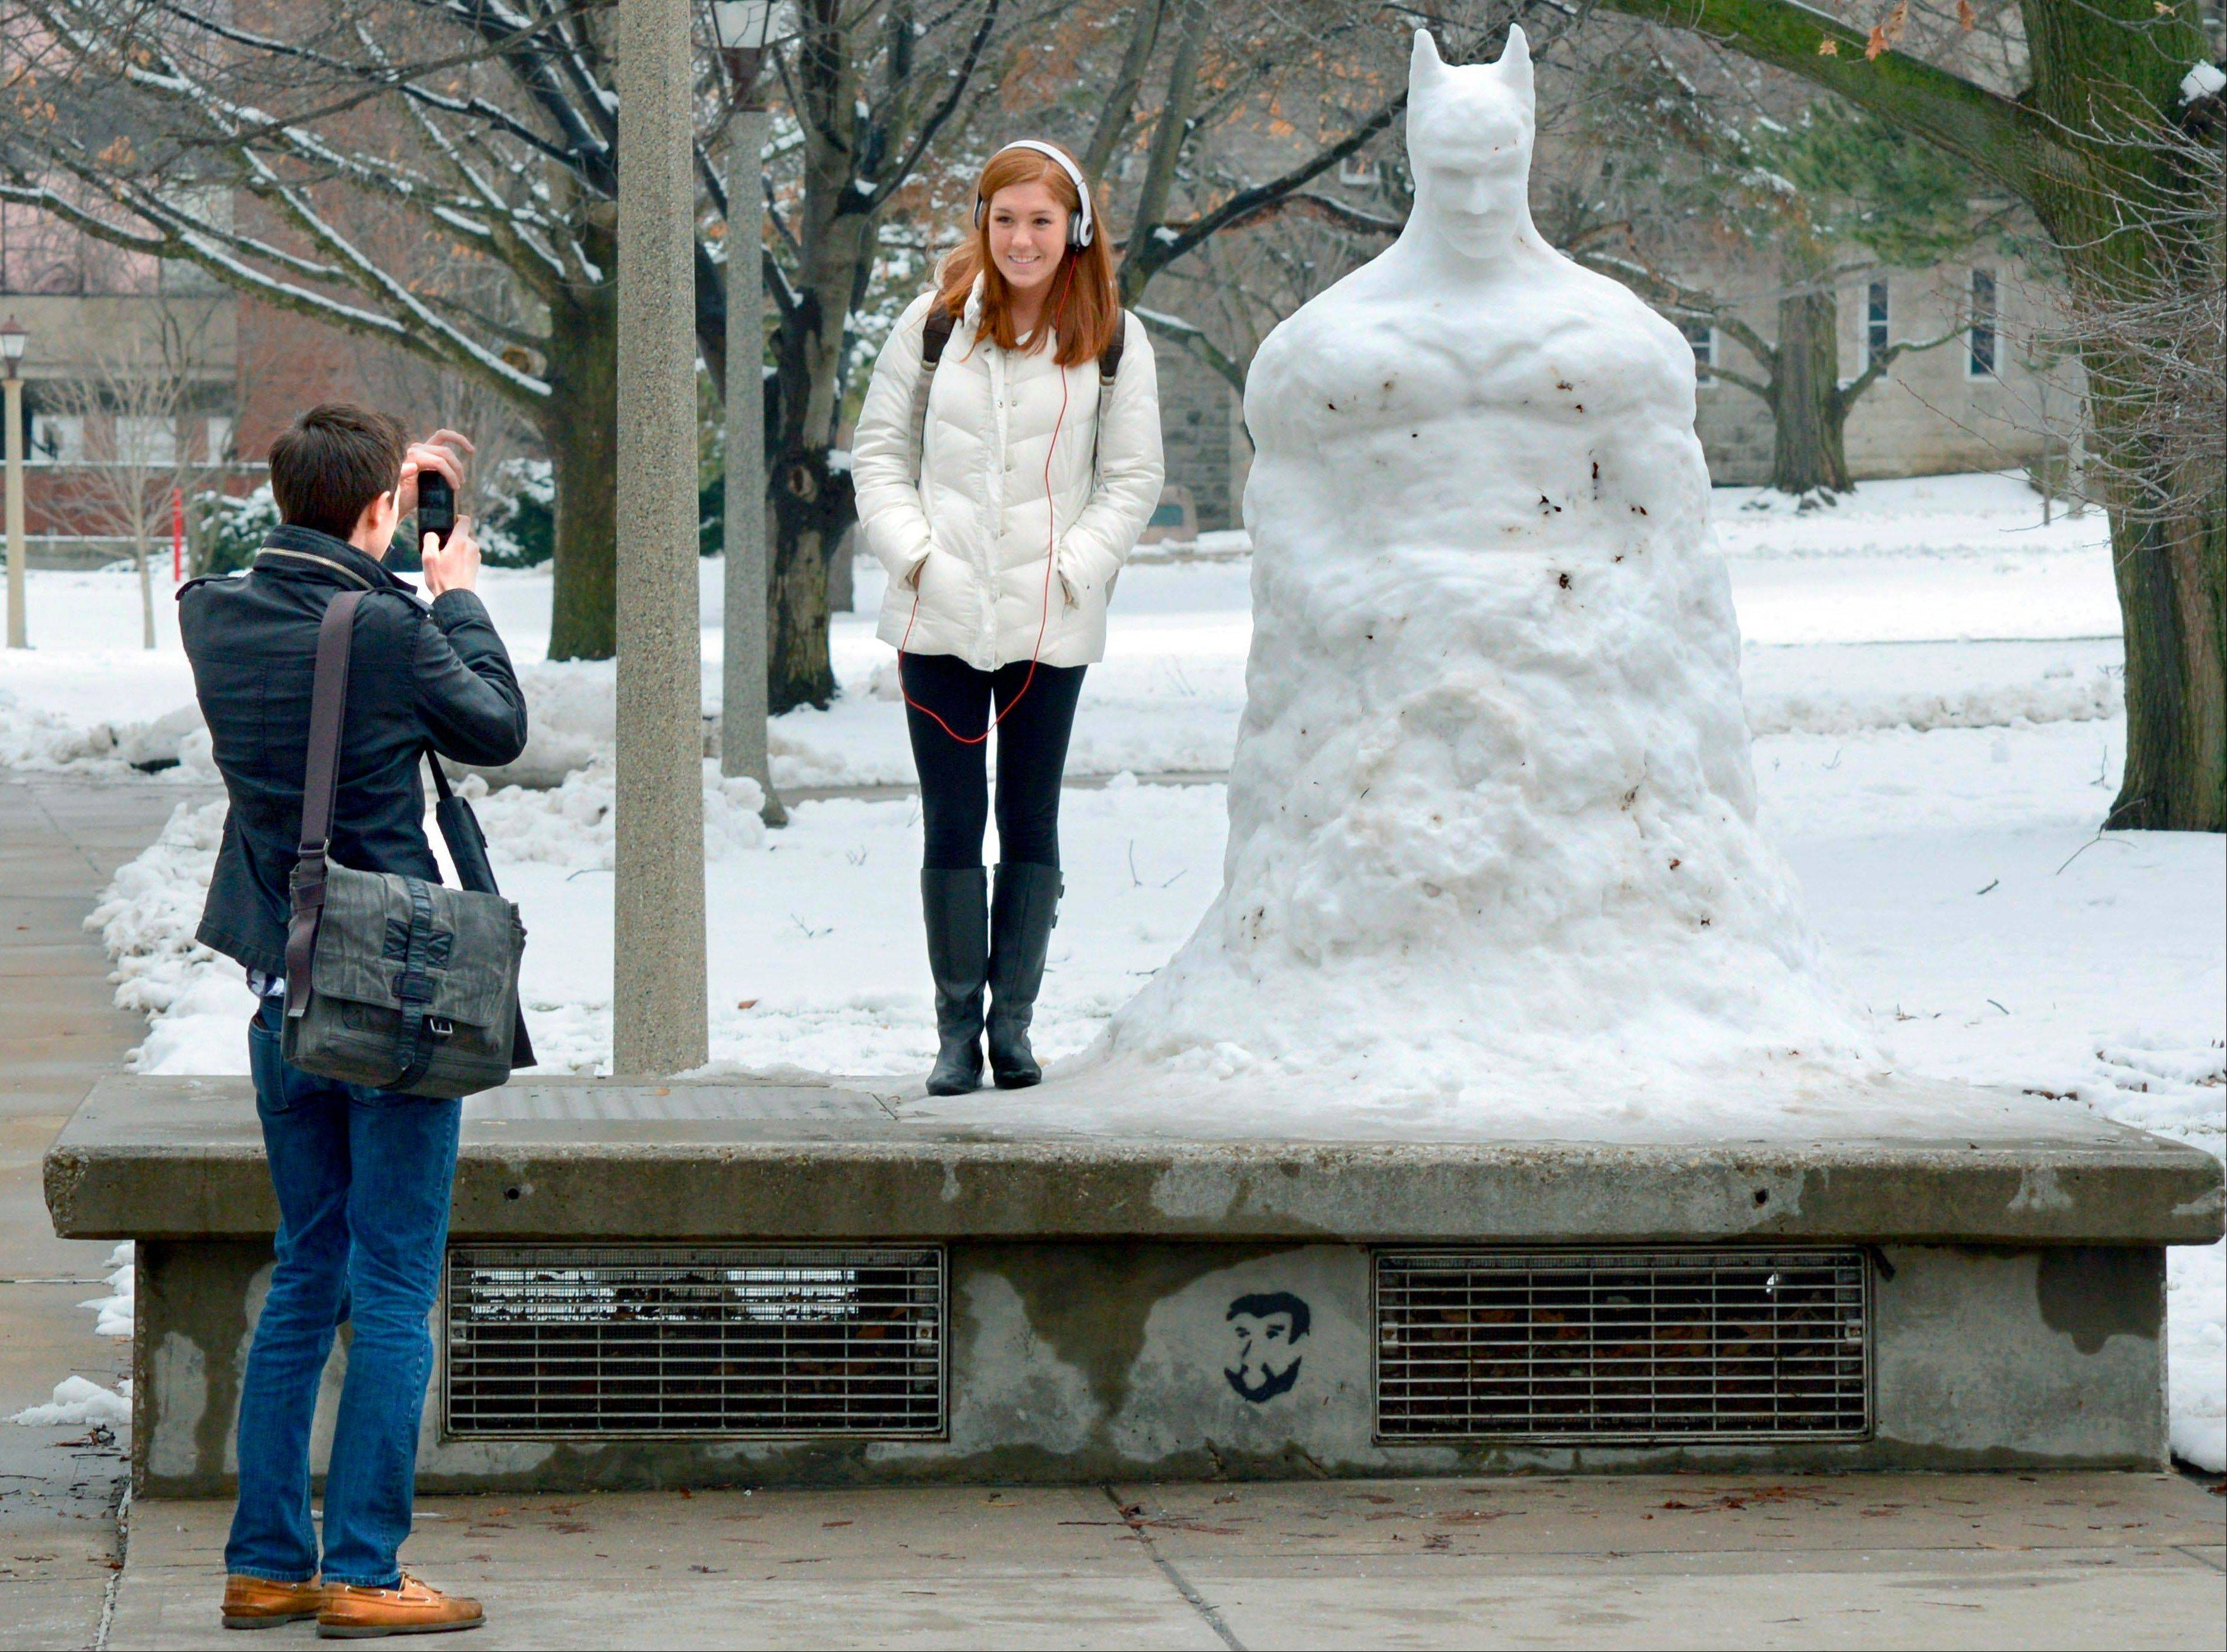 Jonathon Napiorkowski of Gurnee, a junior at Illinois State University, photographs Anna Templin, a junior from Hagerstown, Ind., by a large snow sculpture of Batman that has been drawing a large following on the ISU quadrangle in Normal.